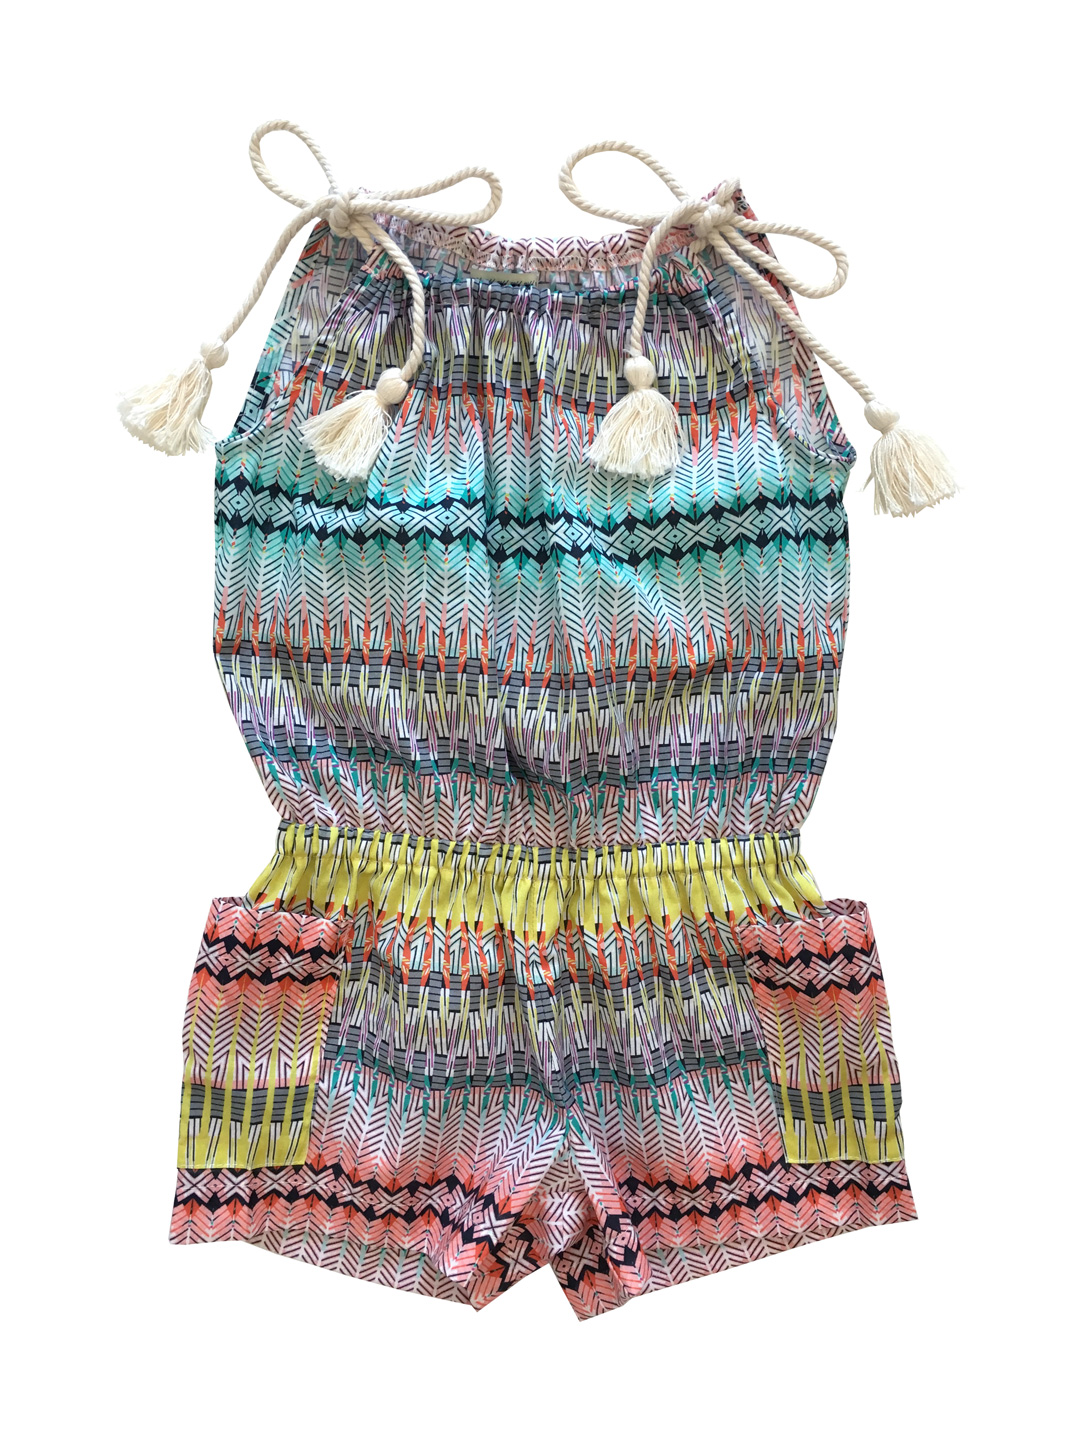 Anthem of the Ants Canyon Romper - Size 5y